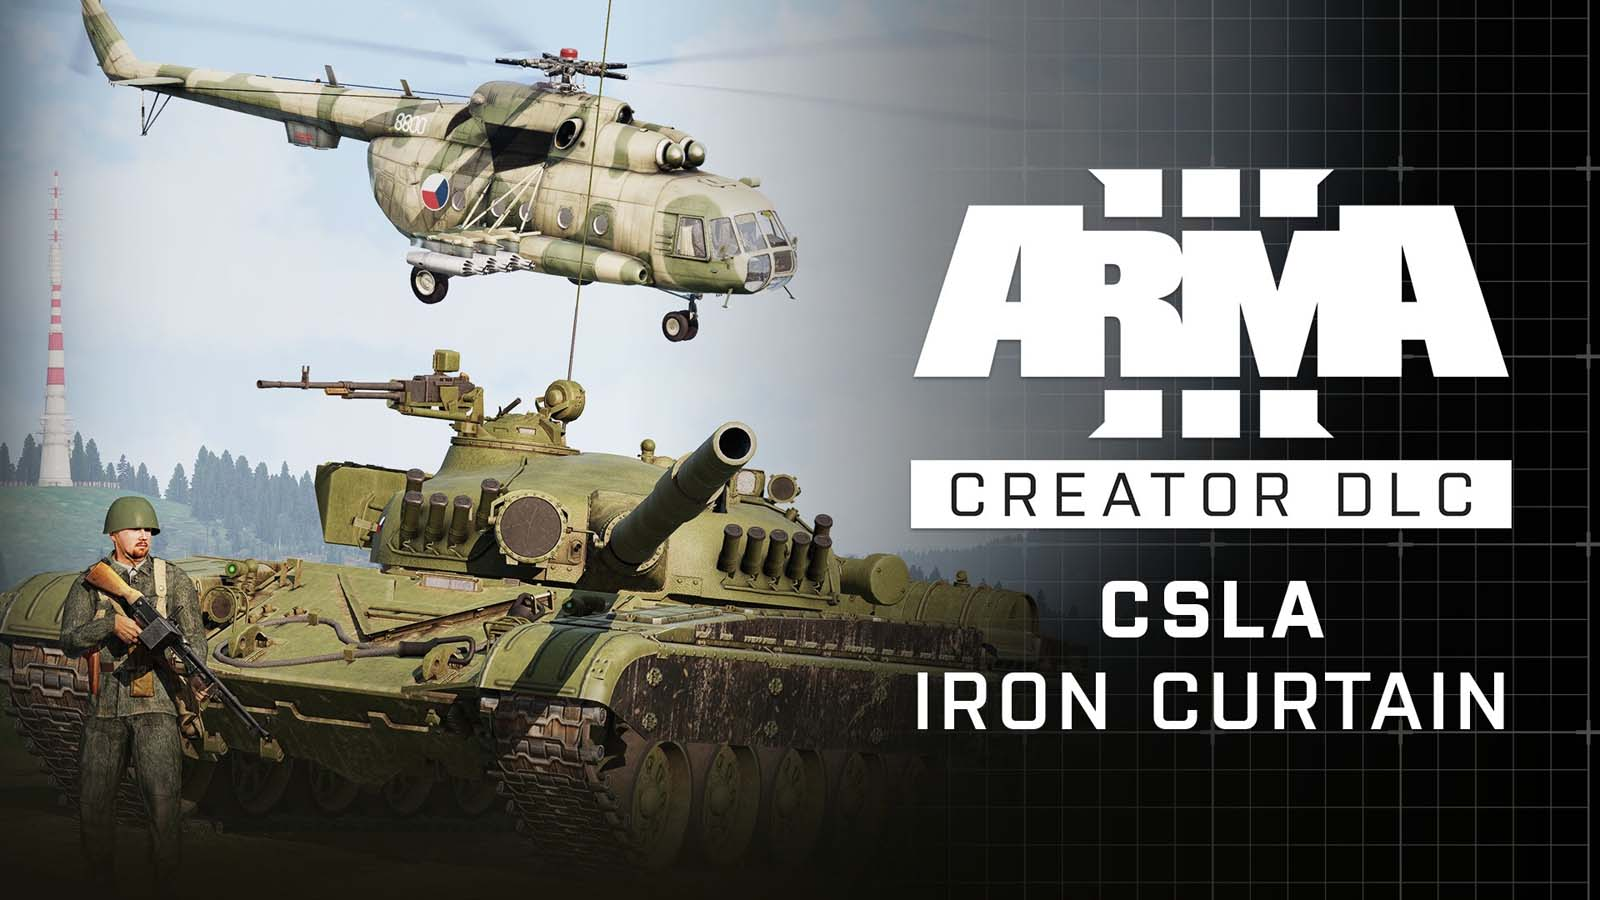 Next Arma 3 Creator DLC Introduces All New Weapons, Gear, and 256 km2 of Terrain